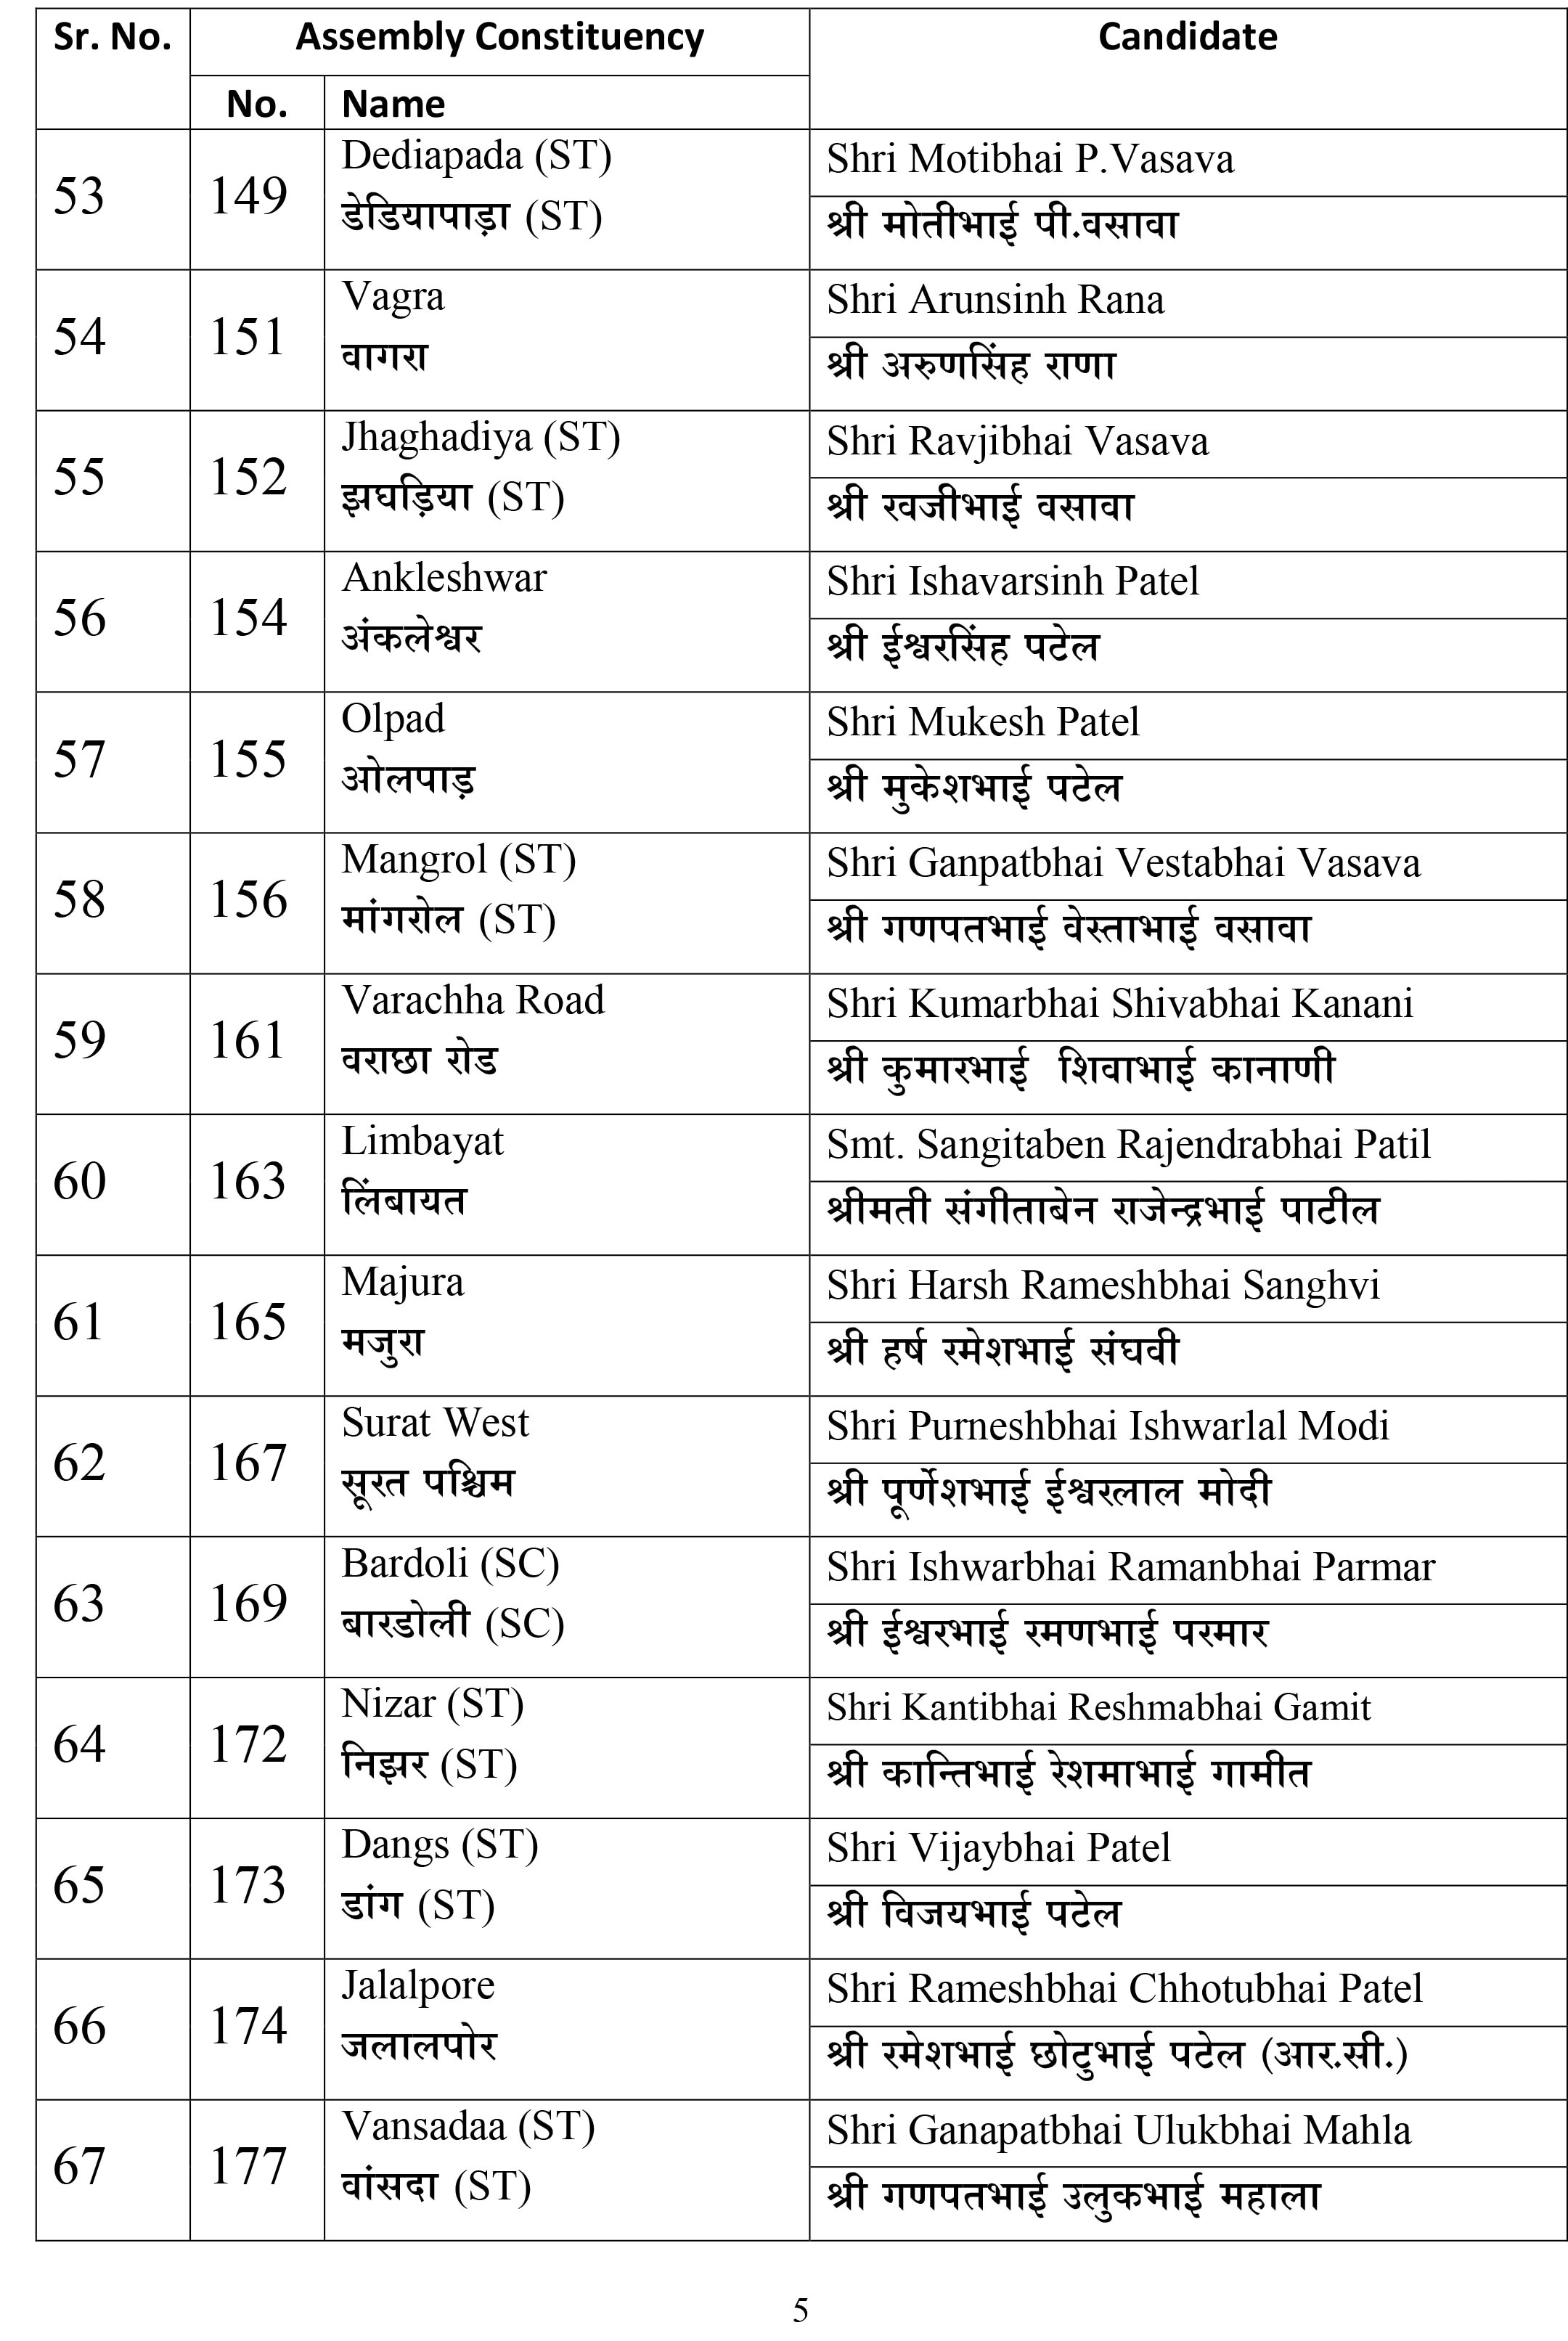 List of BJP candidate for Gujarat Assembly Election 2017 on 17.1